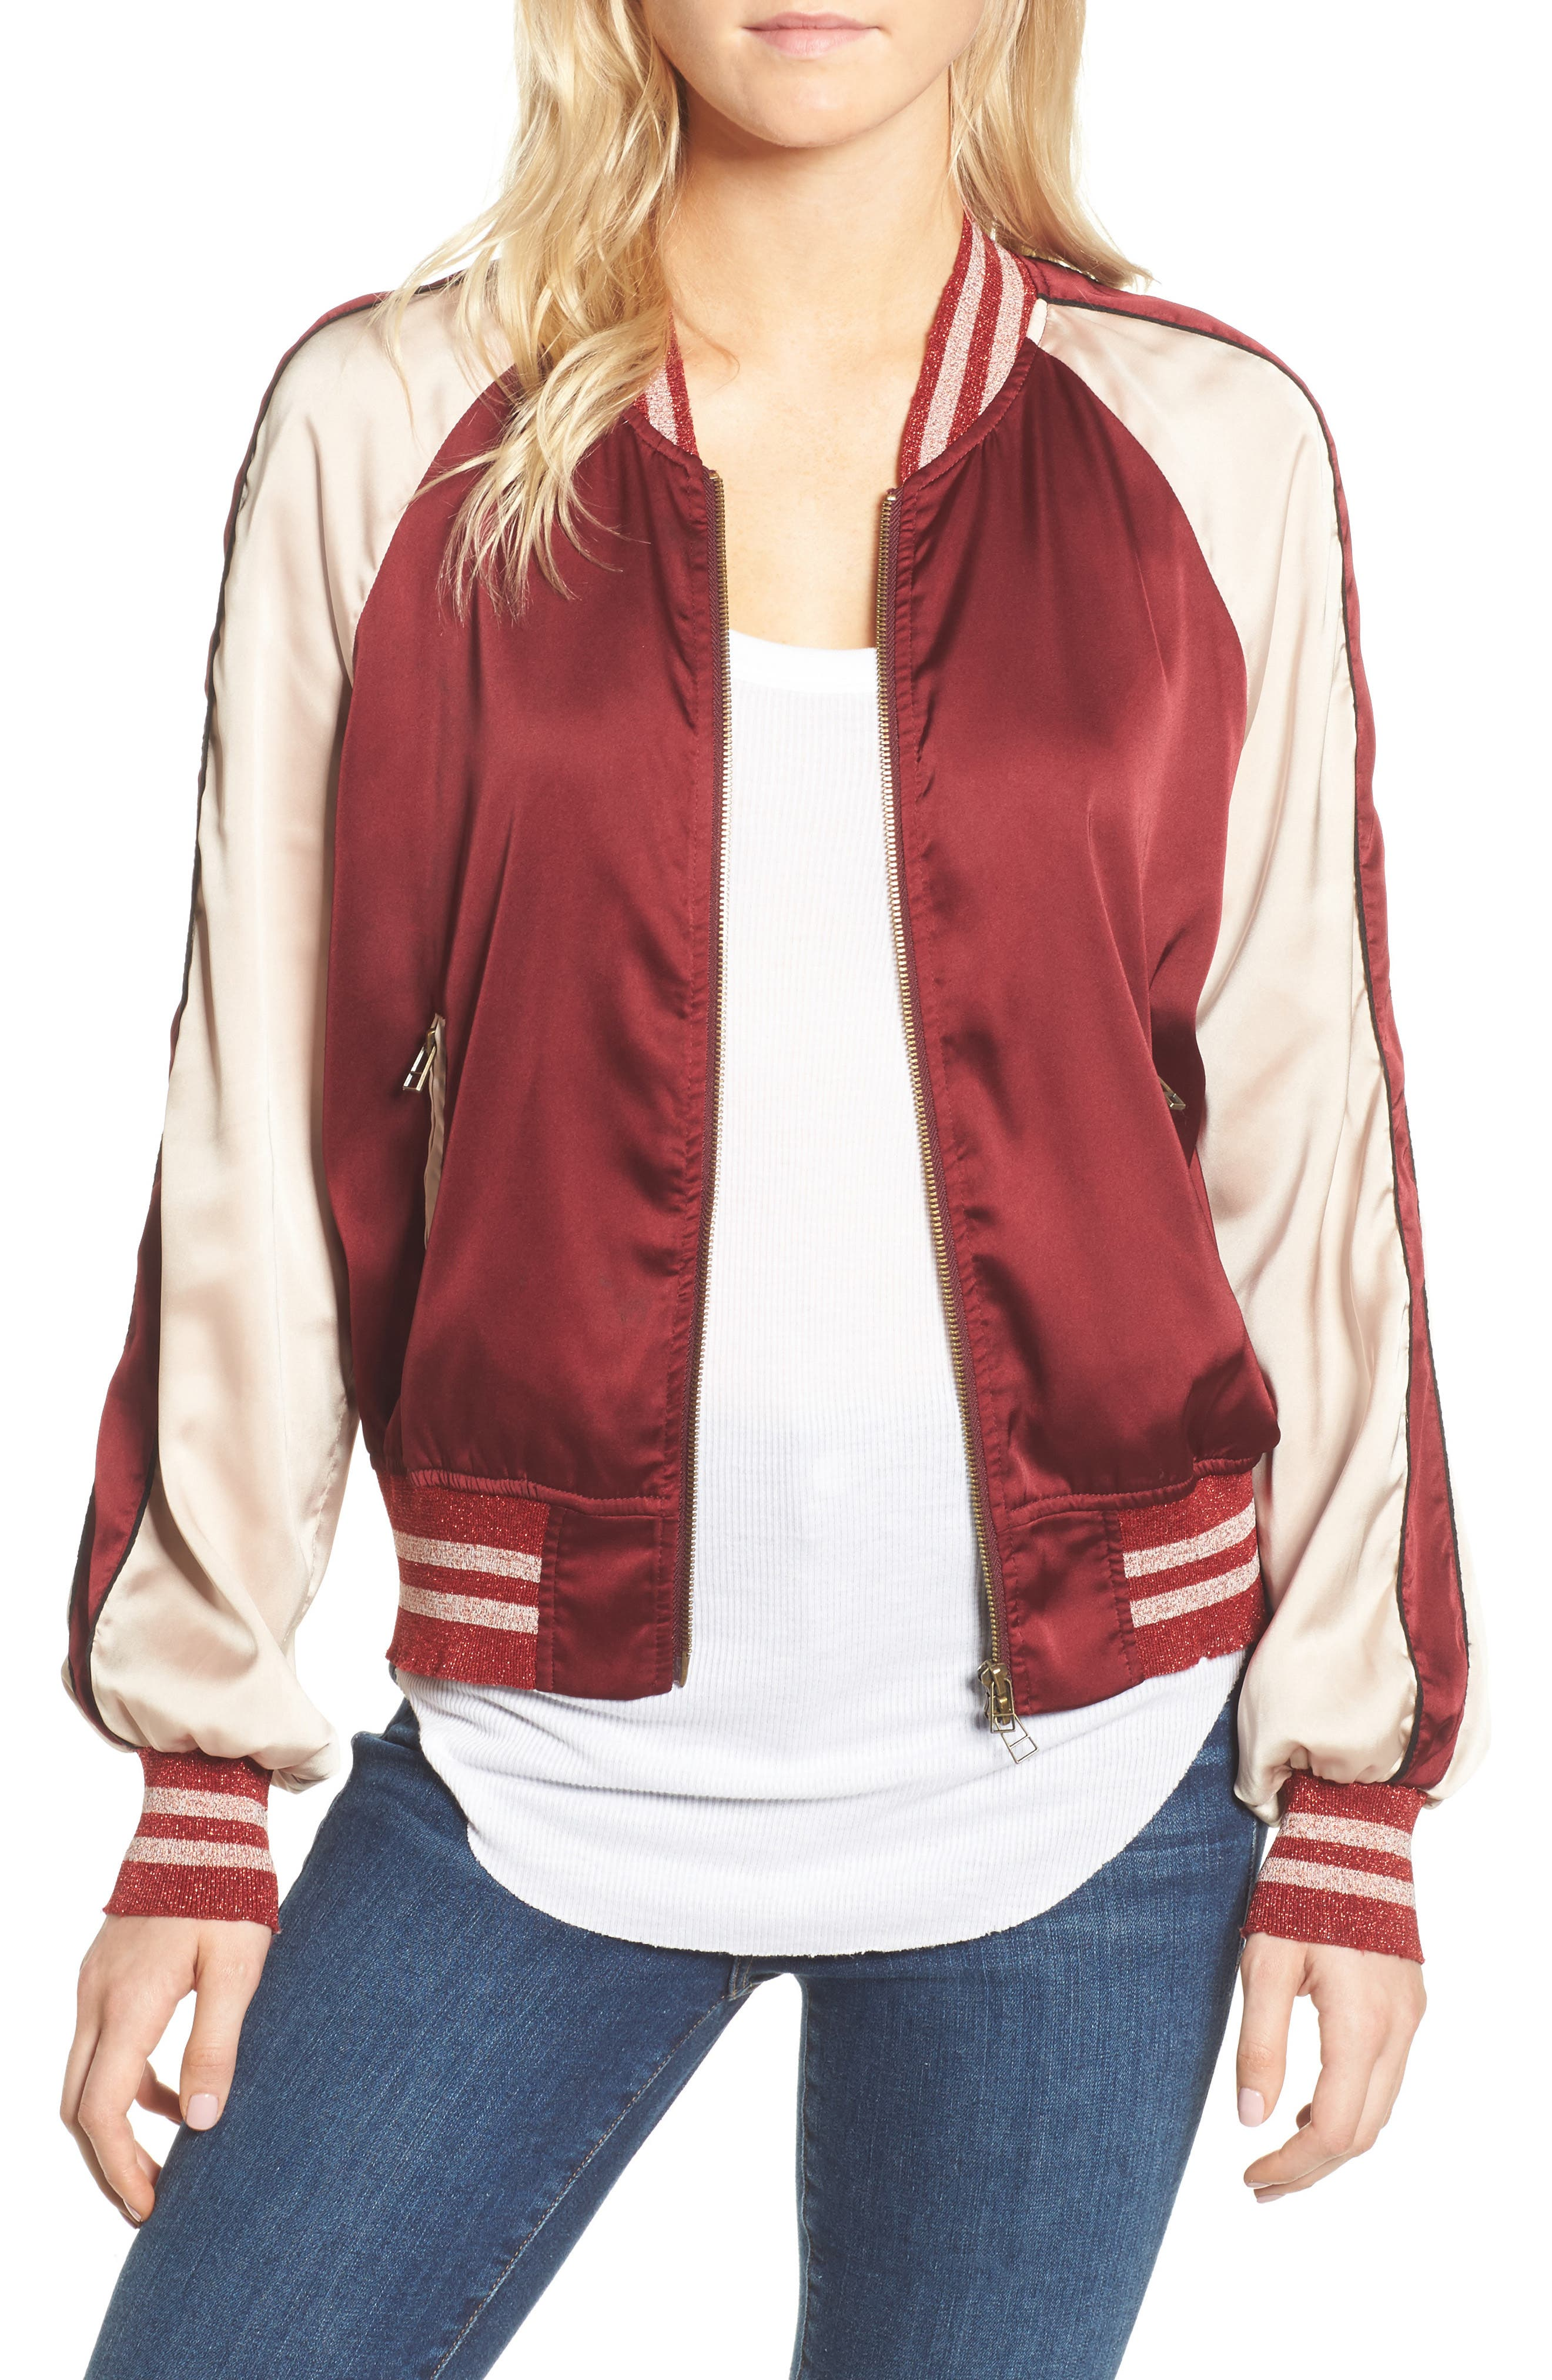 Los Feliz Tigers Bomber Jacket,                             Main thumbnail 1, color,                             Maroon